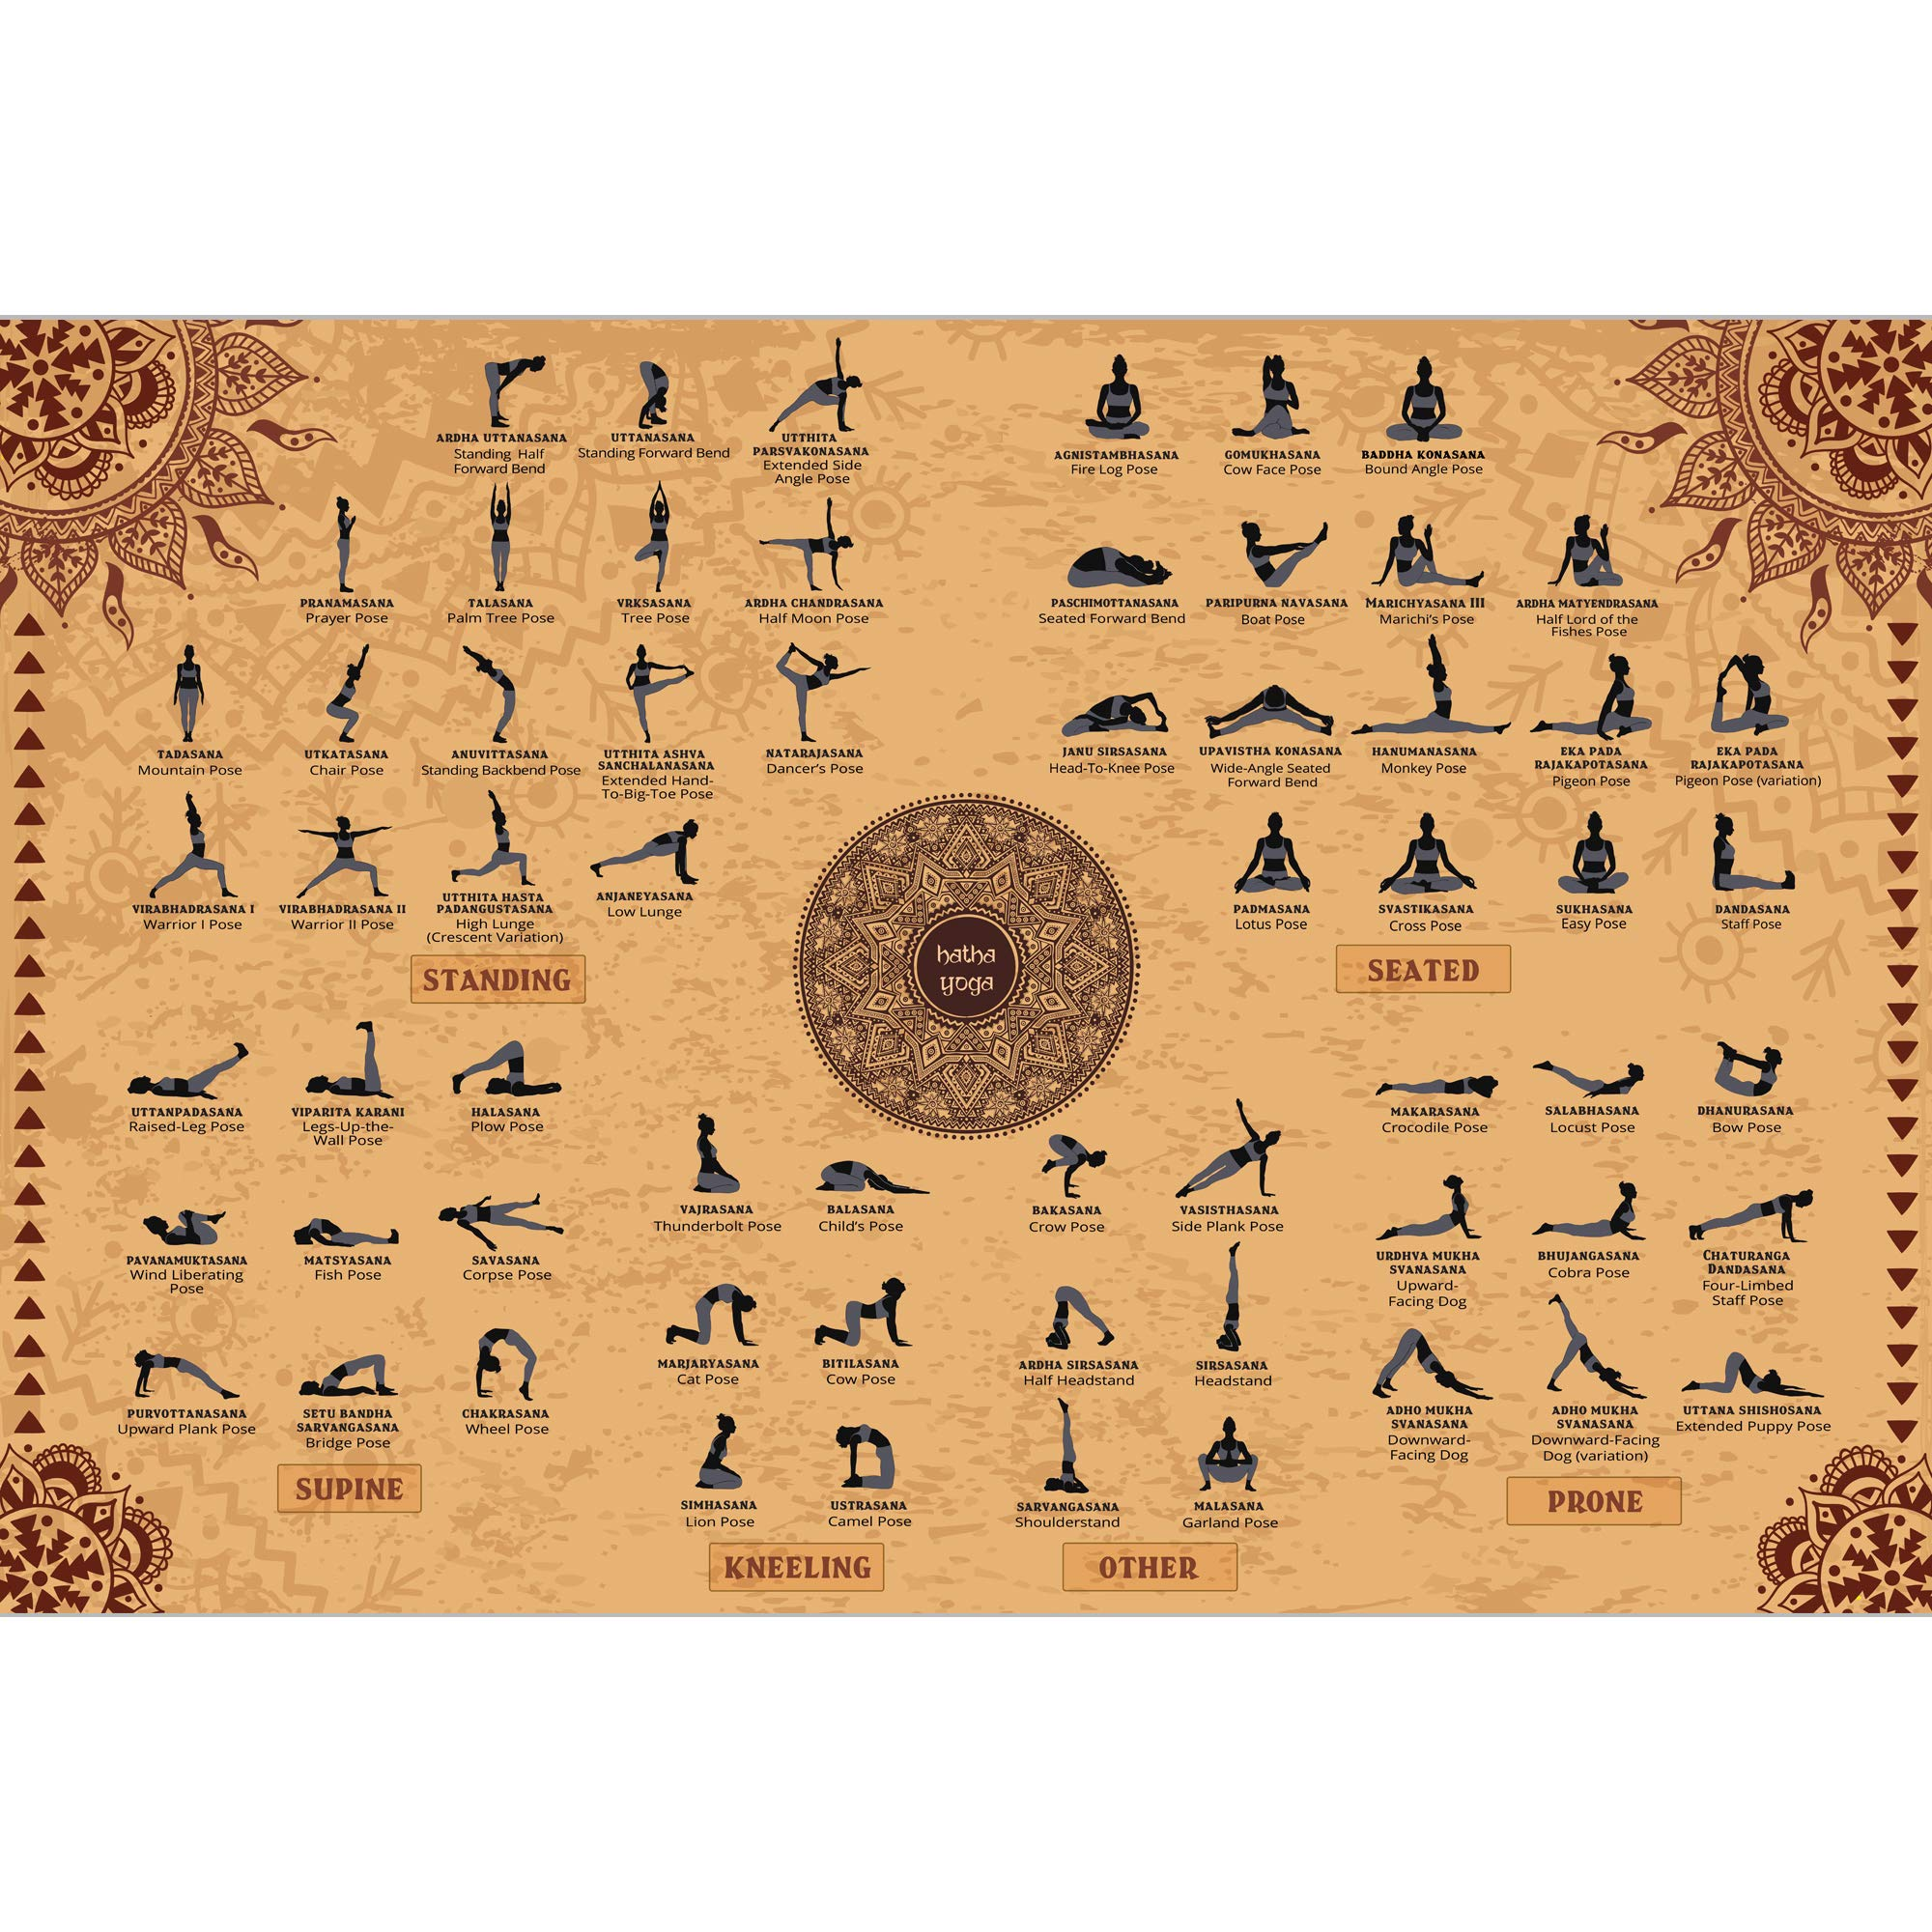 Amazon Com Yoga Poses Poster 24x36 Inches Canvas Fabric Yoga Tapestry With 62 Beginner Intermediate Yoga Asanas Stretches Positions Posture Names In Both English And Sanskrit Rolled Tube Sports Outdoors